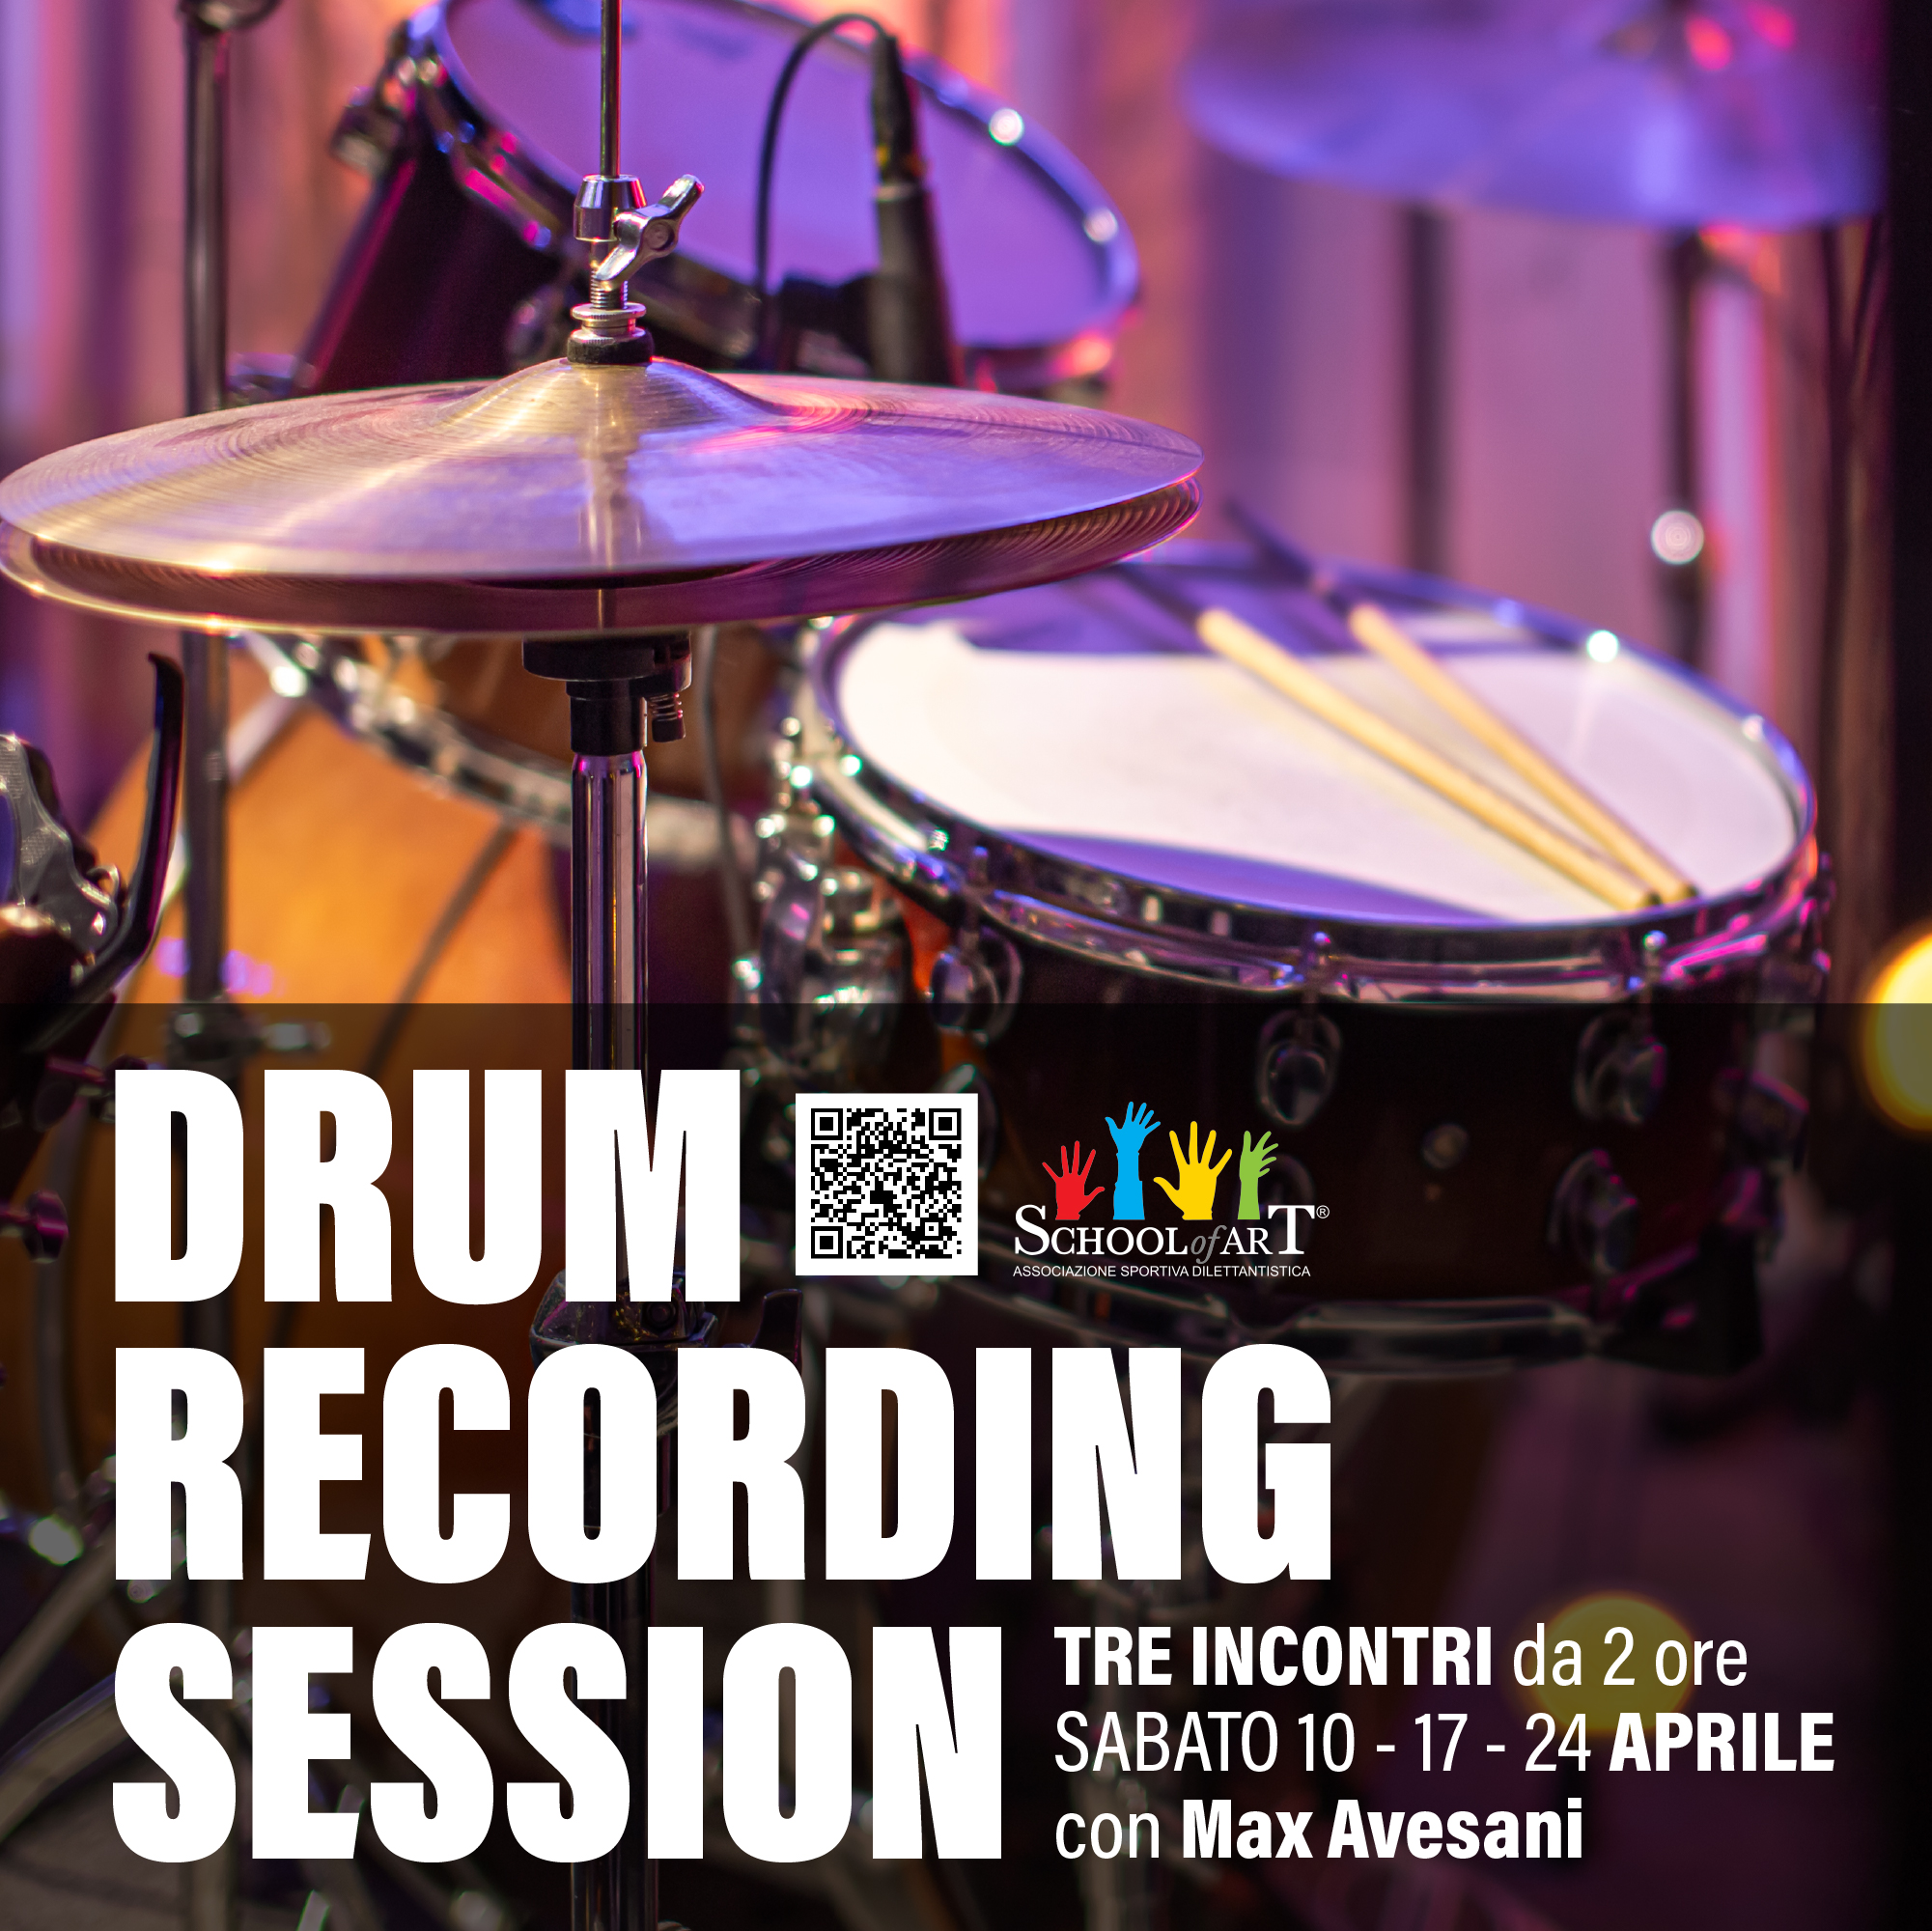 Drum Recording Session, con Max Avesani, è il laboratorio per imparare a registrare la propria batteria e migliorare le proprie performance in studio di registrazione - School of Art®